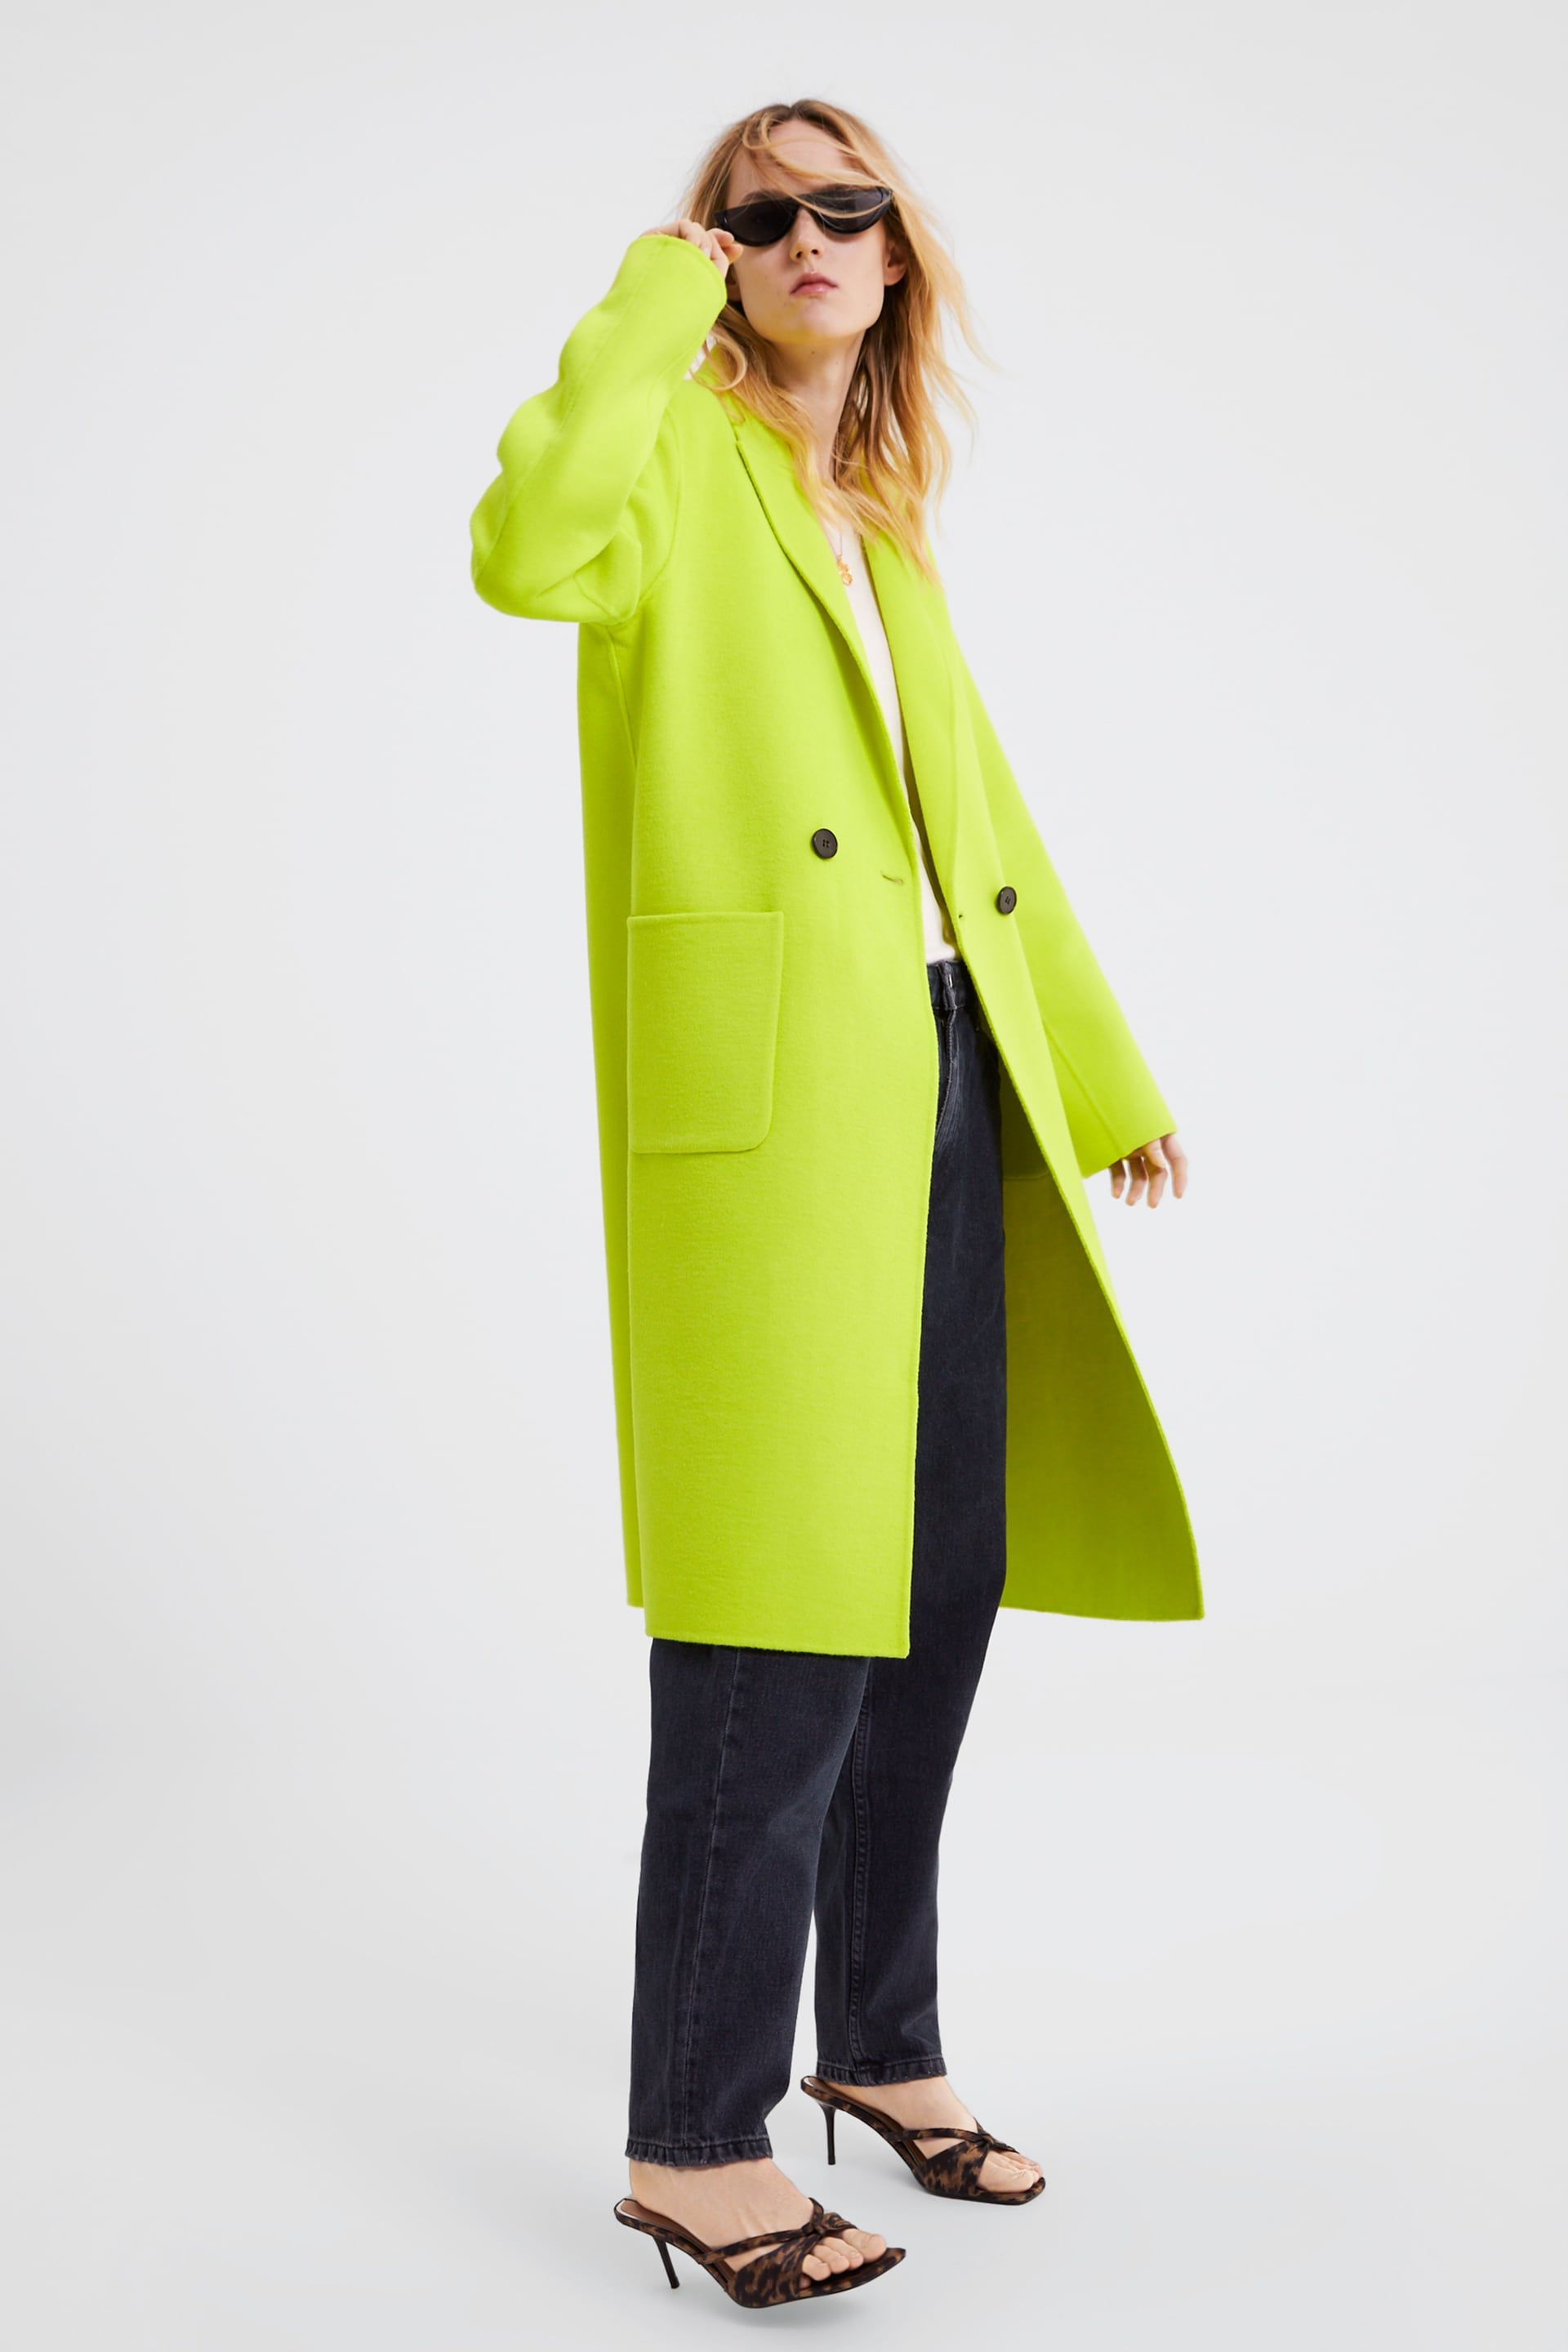 Women's Coats | ZARA United States | Coat, Zara, Outerwear women